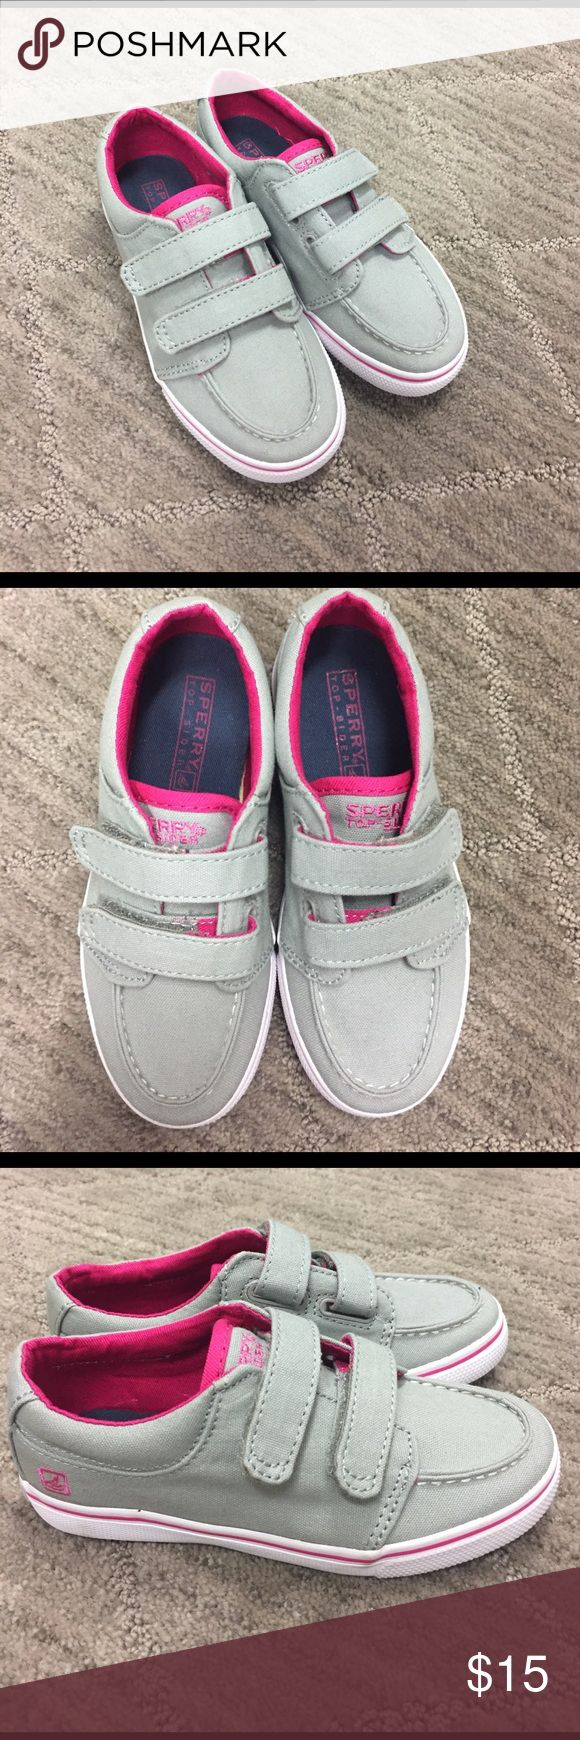 Toddler Girl Sperrys (never worn) Toddler Girl Sperrys - BRAND NEW - never worn Sperry Shoes Sneakers